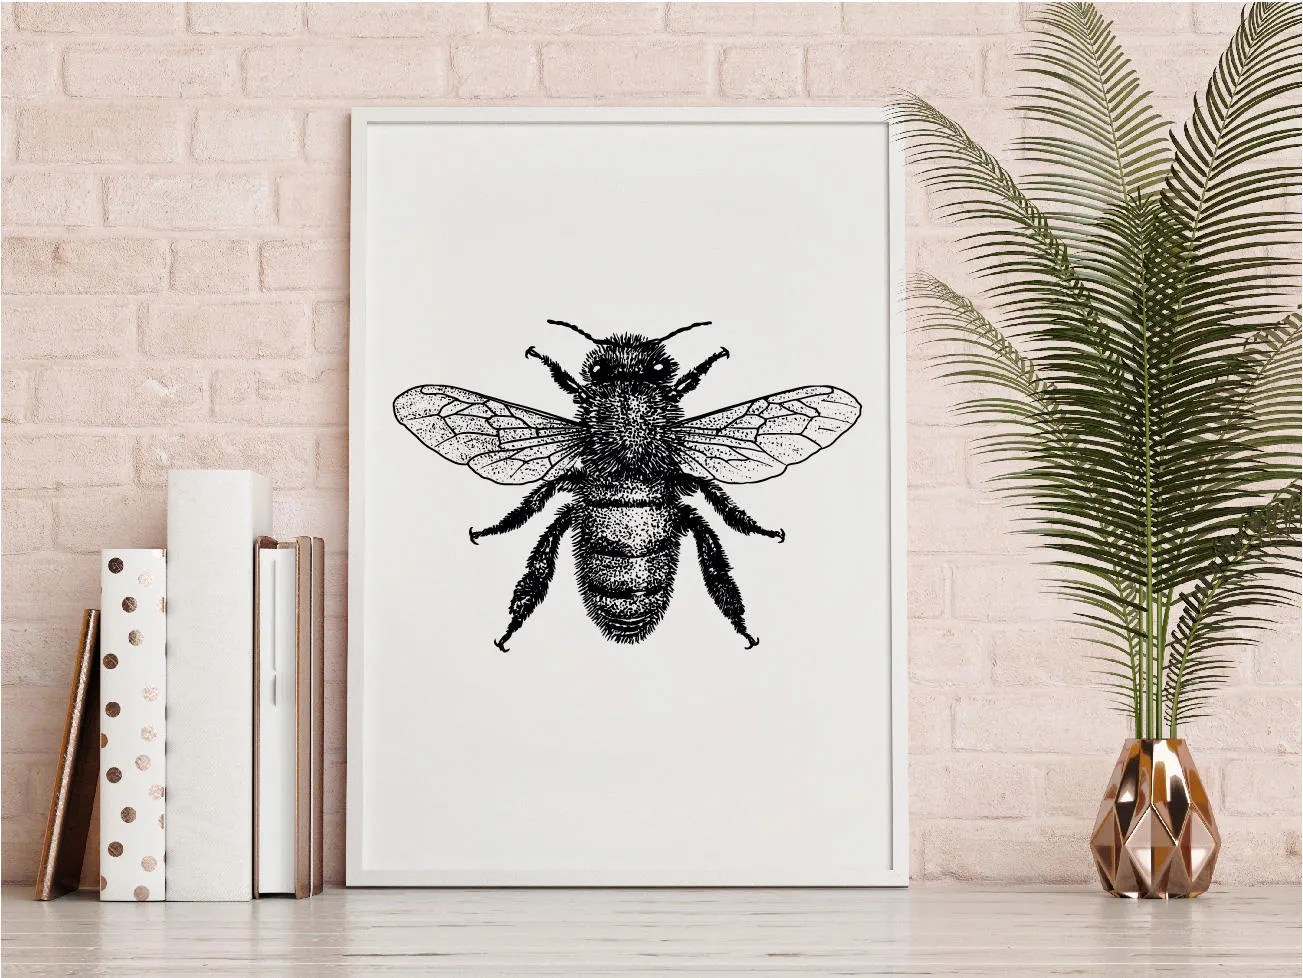 bumble bee diagram simplicity zero turn mower wiring art print etsy illustration black and white wall printable download hand drawn monochrome insect poster